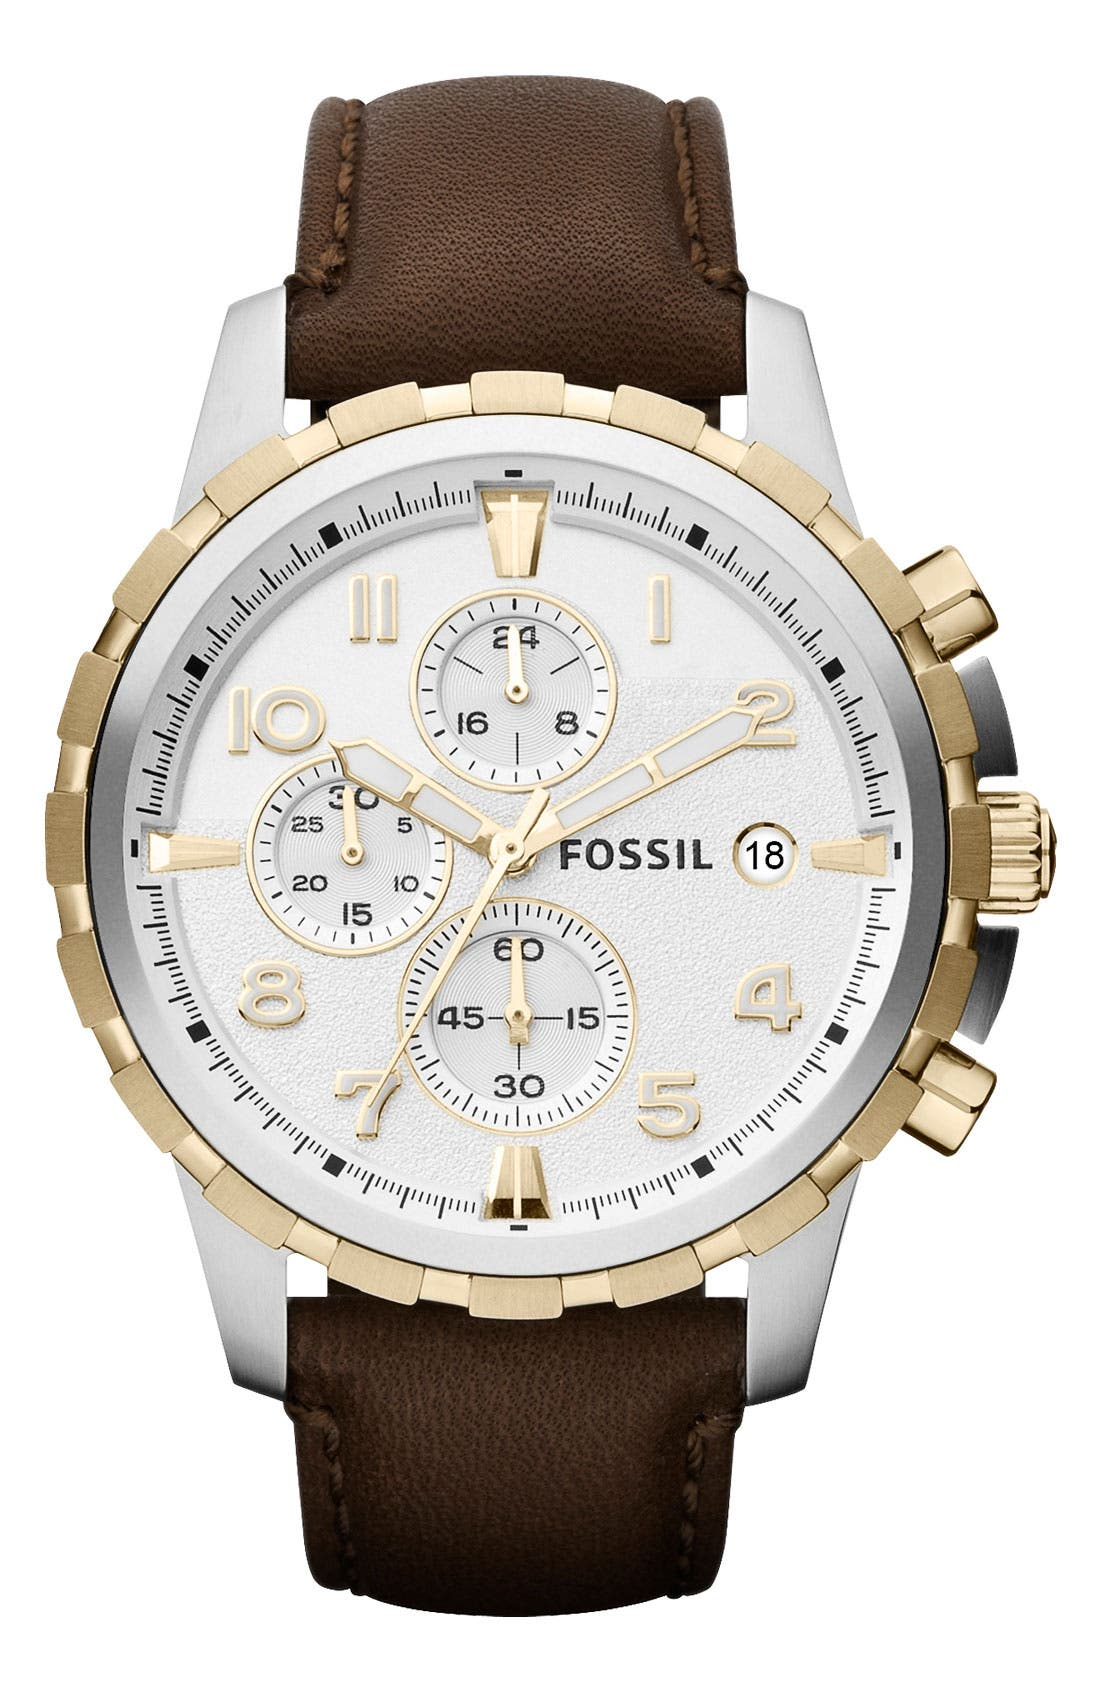 Main Image - Fossil 'Dean' Chronograph Leather Strap Watch, 45mm